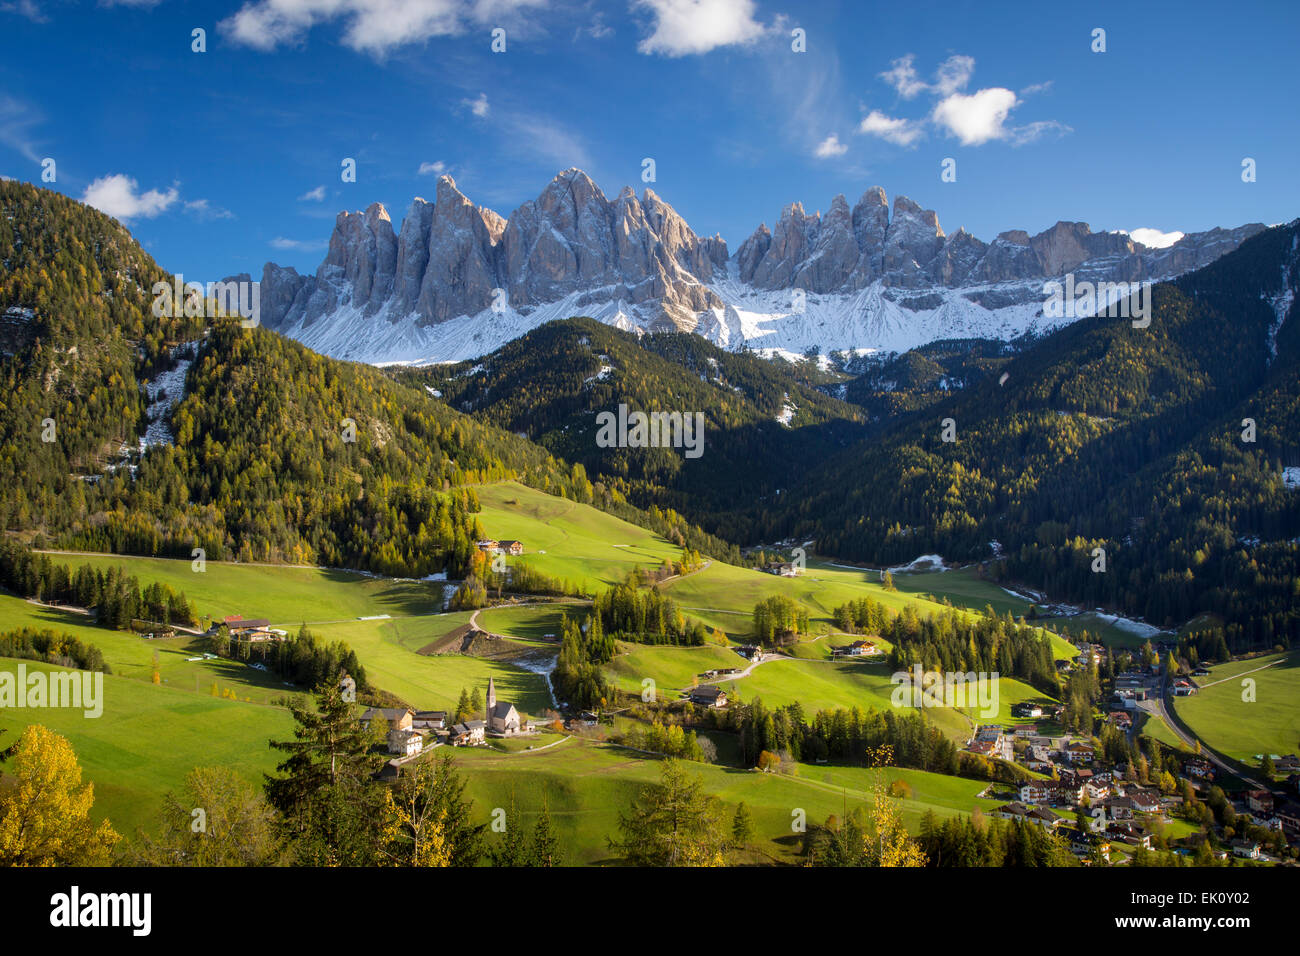 Autumn afternoon over Val di Funes, Santa Maddelena and the Geisler-Spitzen, Dolomites, Trentino-Alto-Adige, Italy - Stock Image